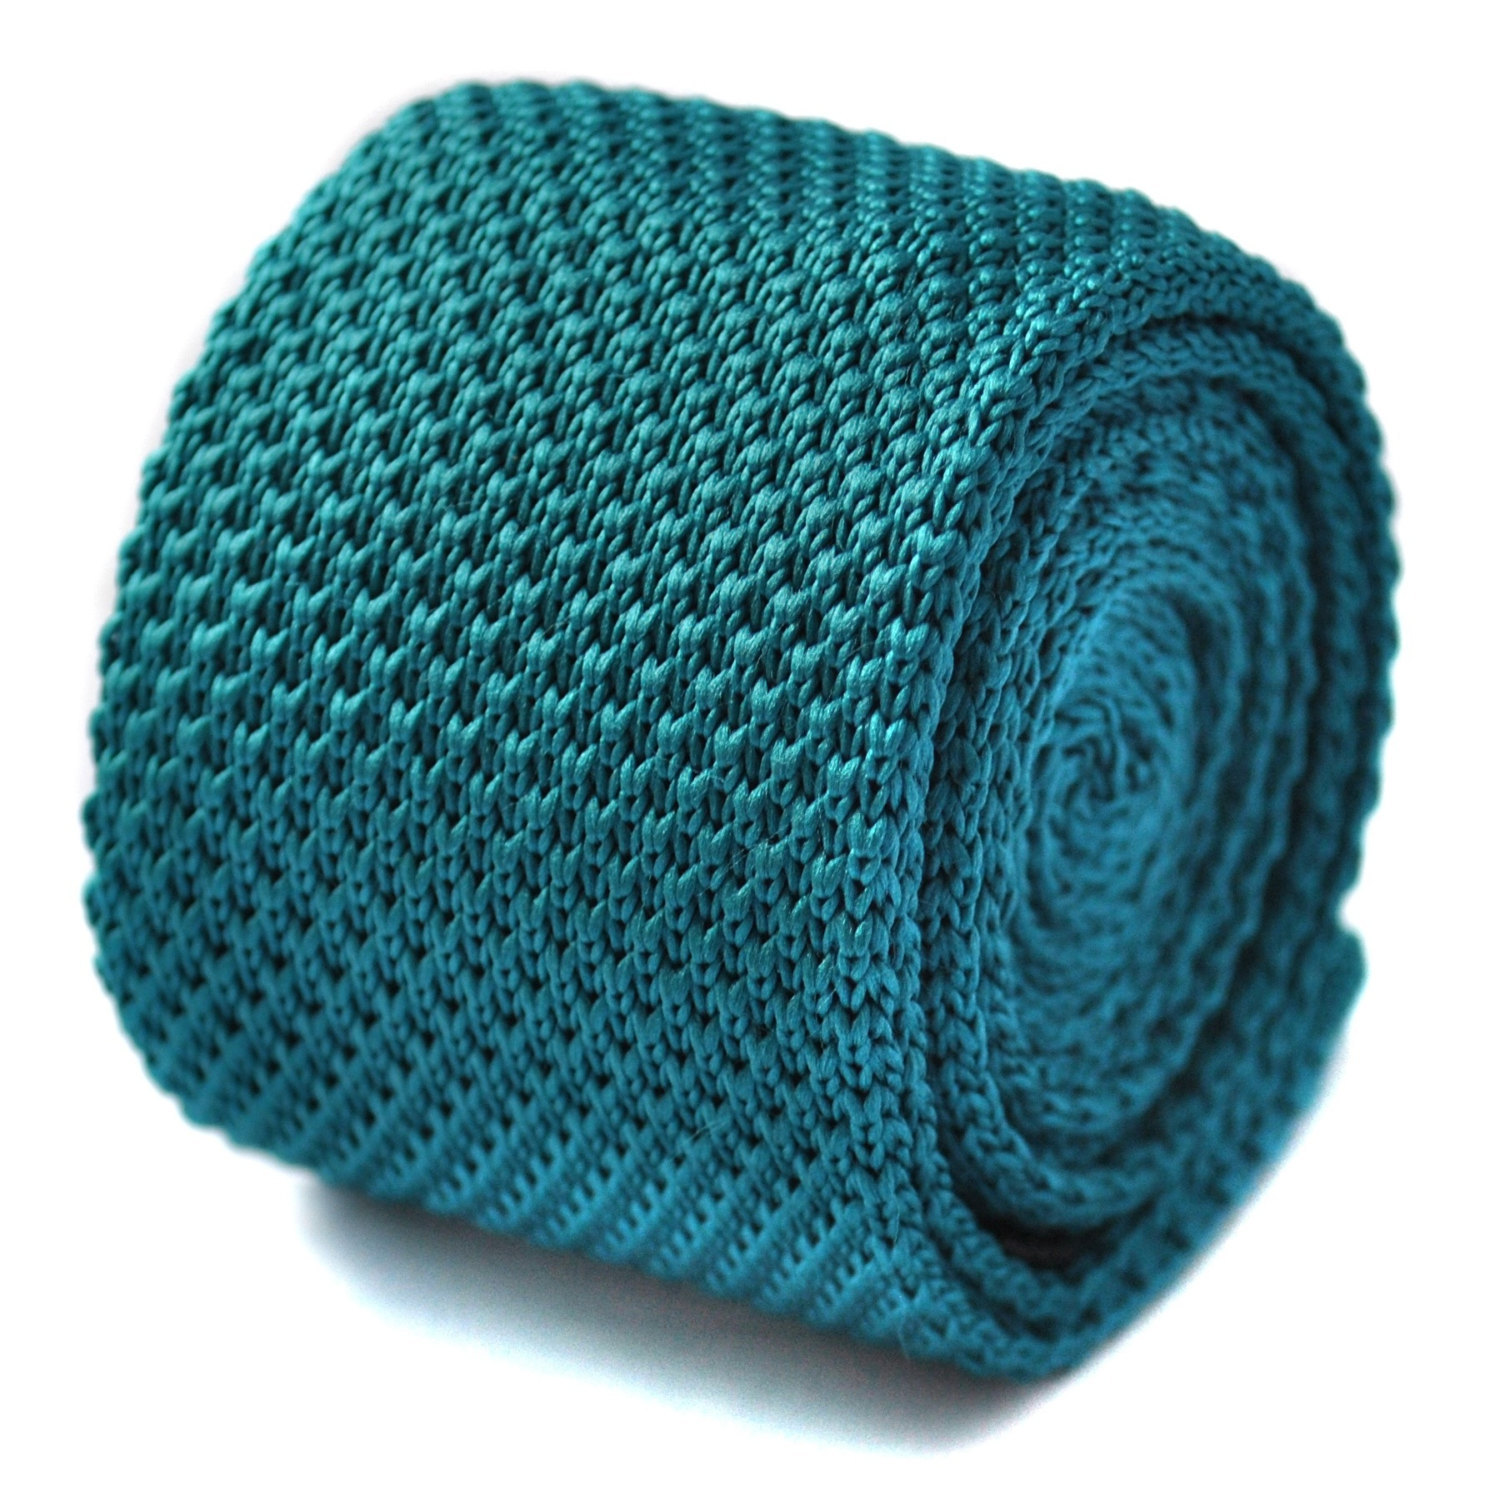 teal turquoise green plain knitted skinny tie by Frederick Thomas FT1576